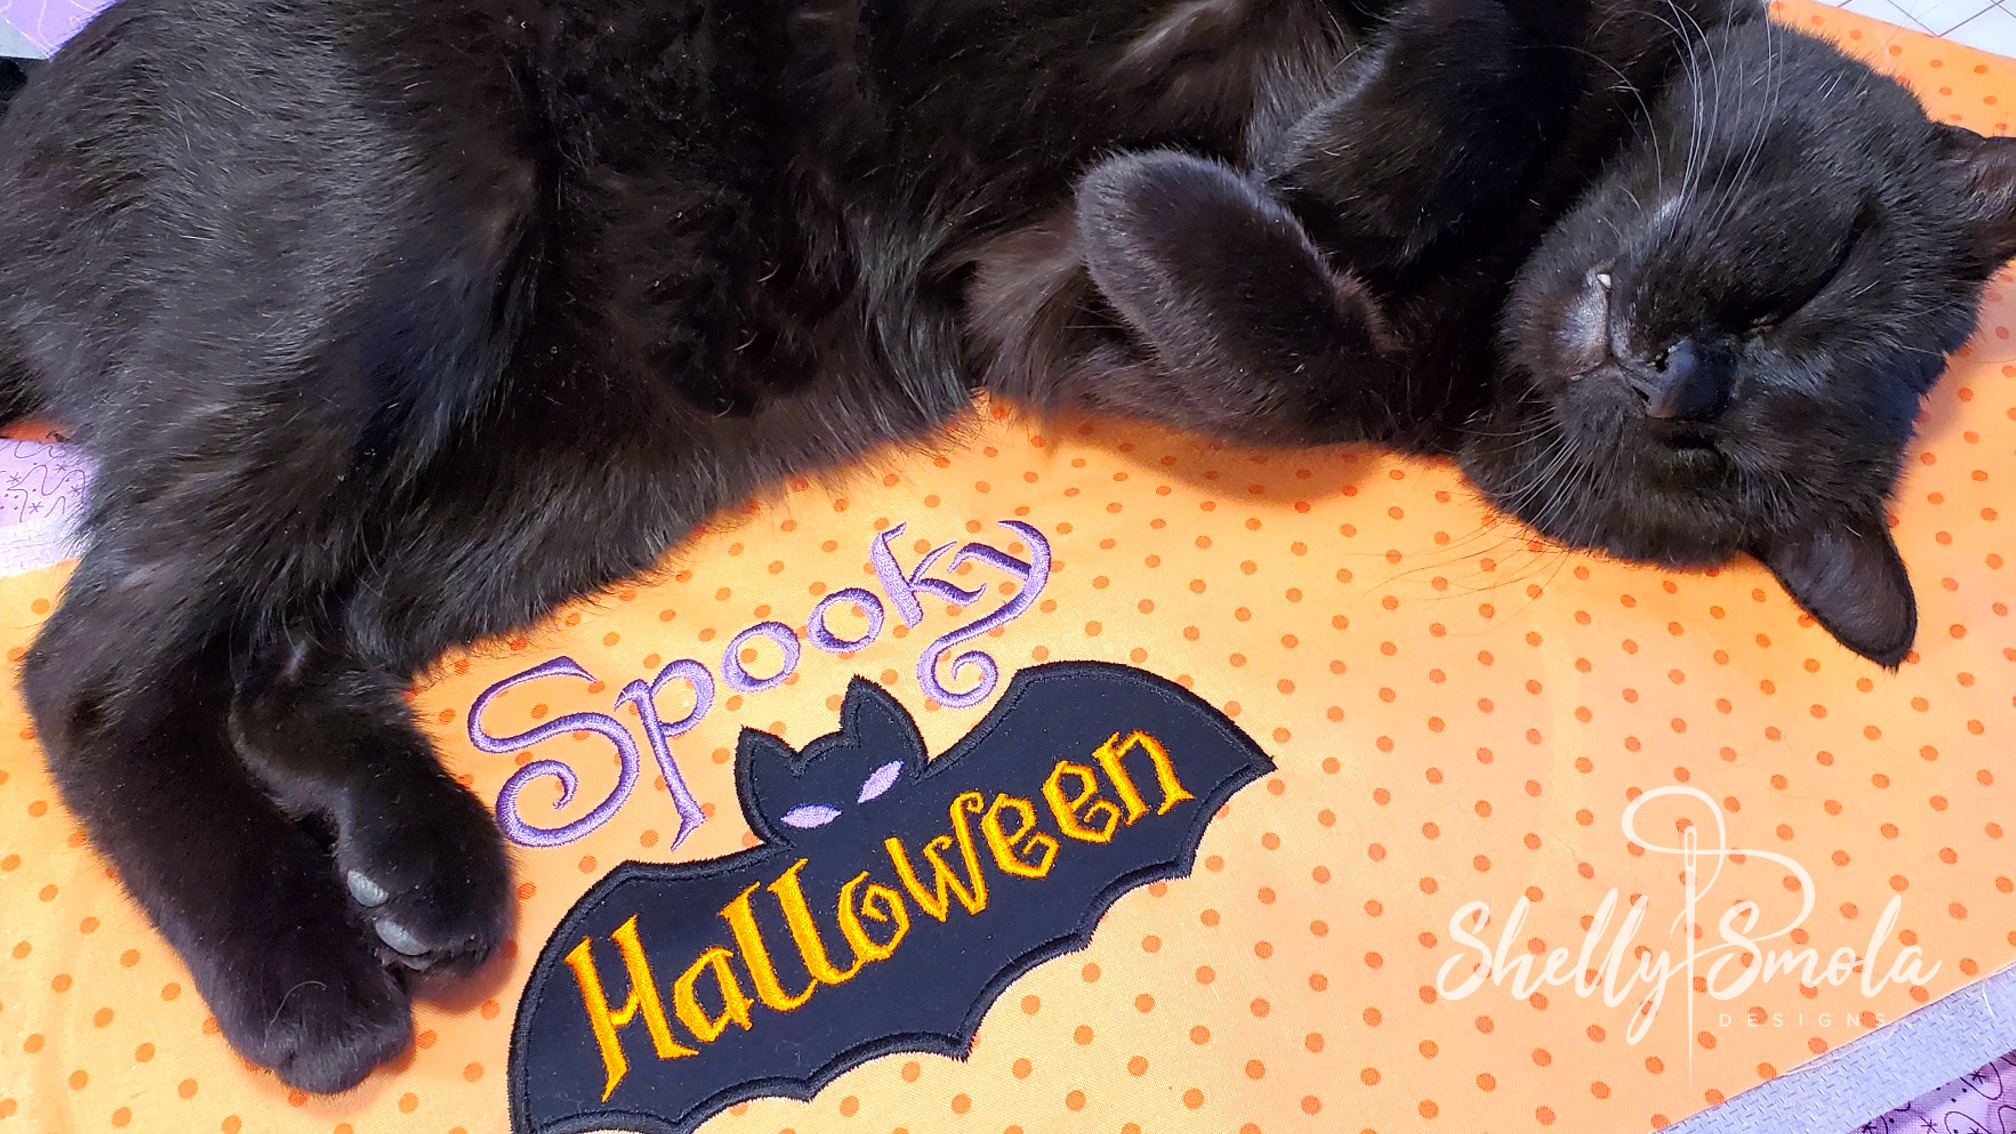 Spooky Halloween and Spooky the Cat by Shelly Smola